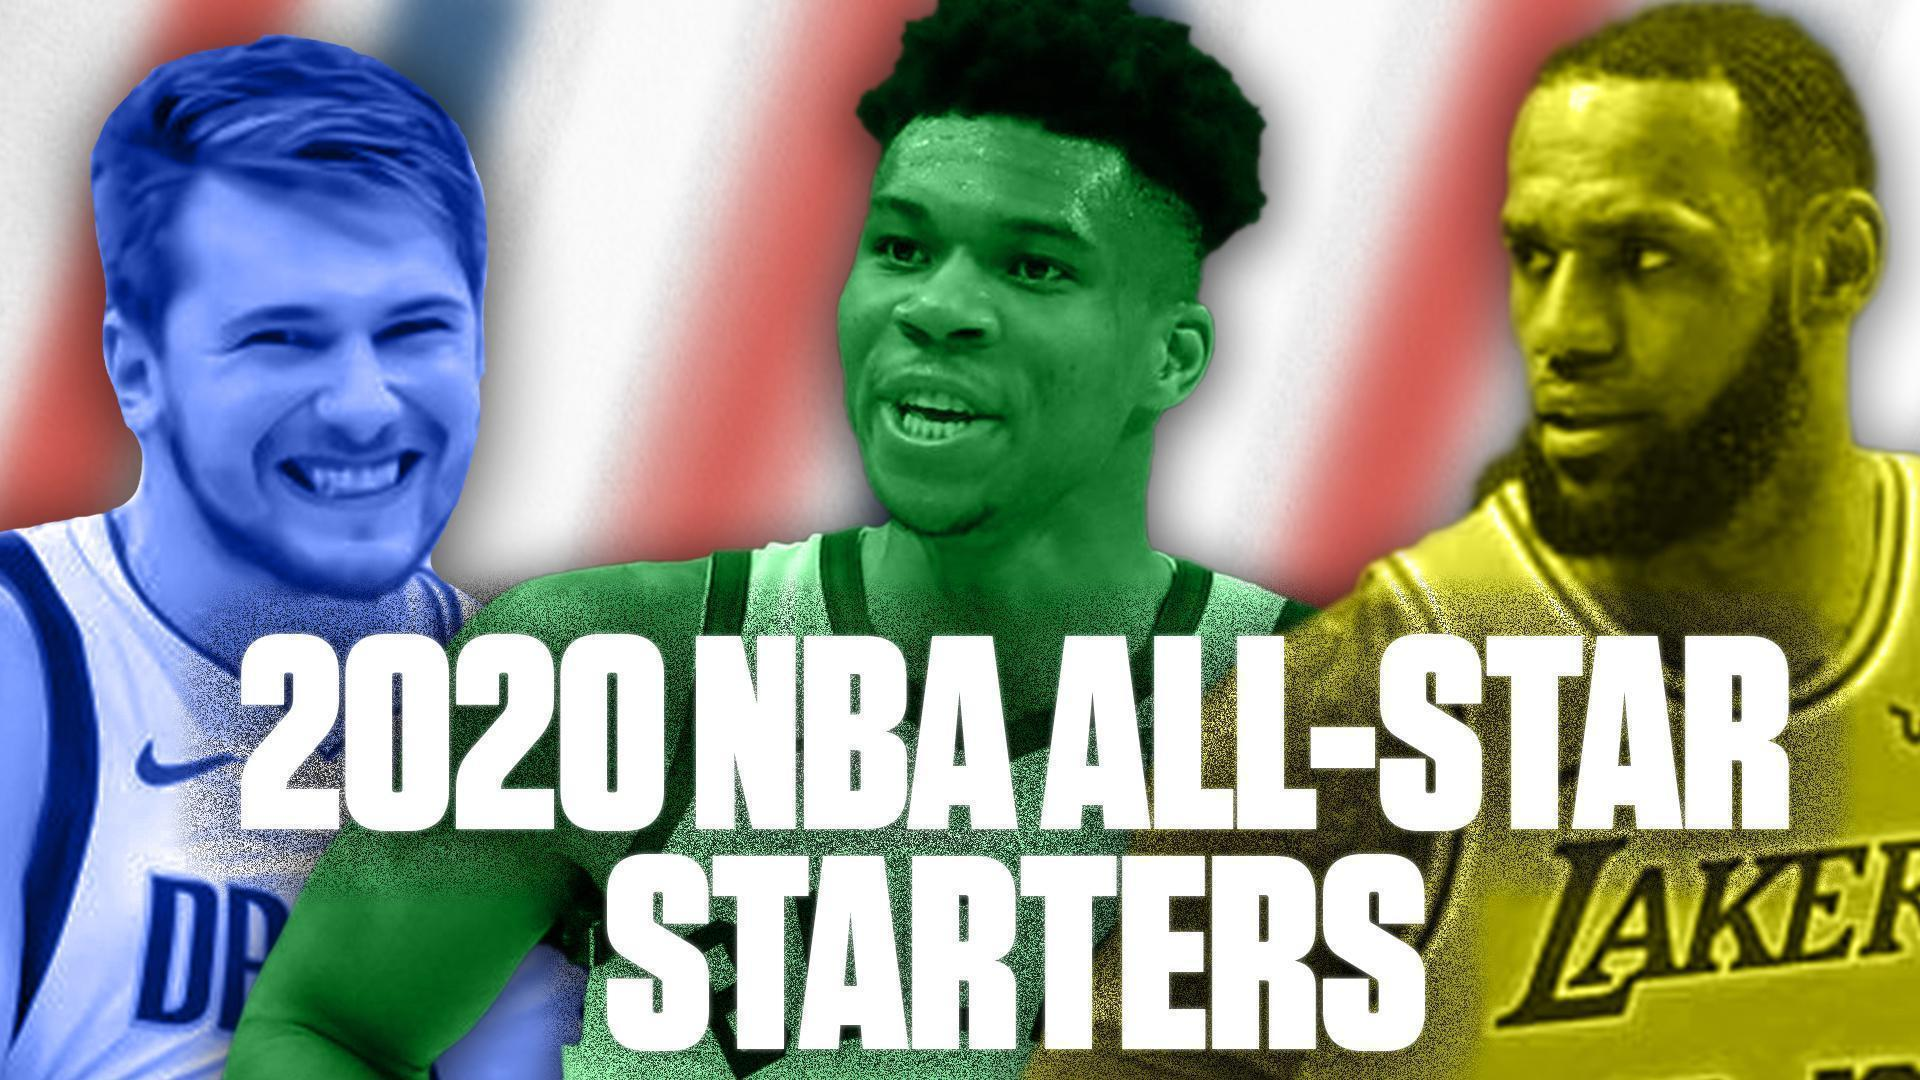 The NBA All-Star starters are ready for prime time in Chicago